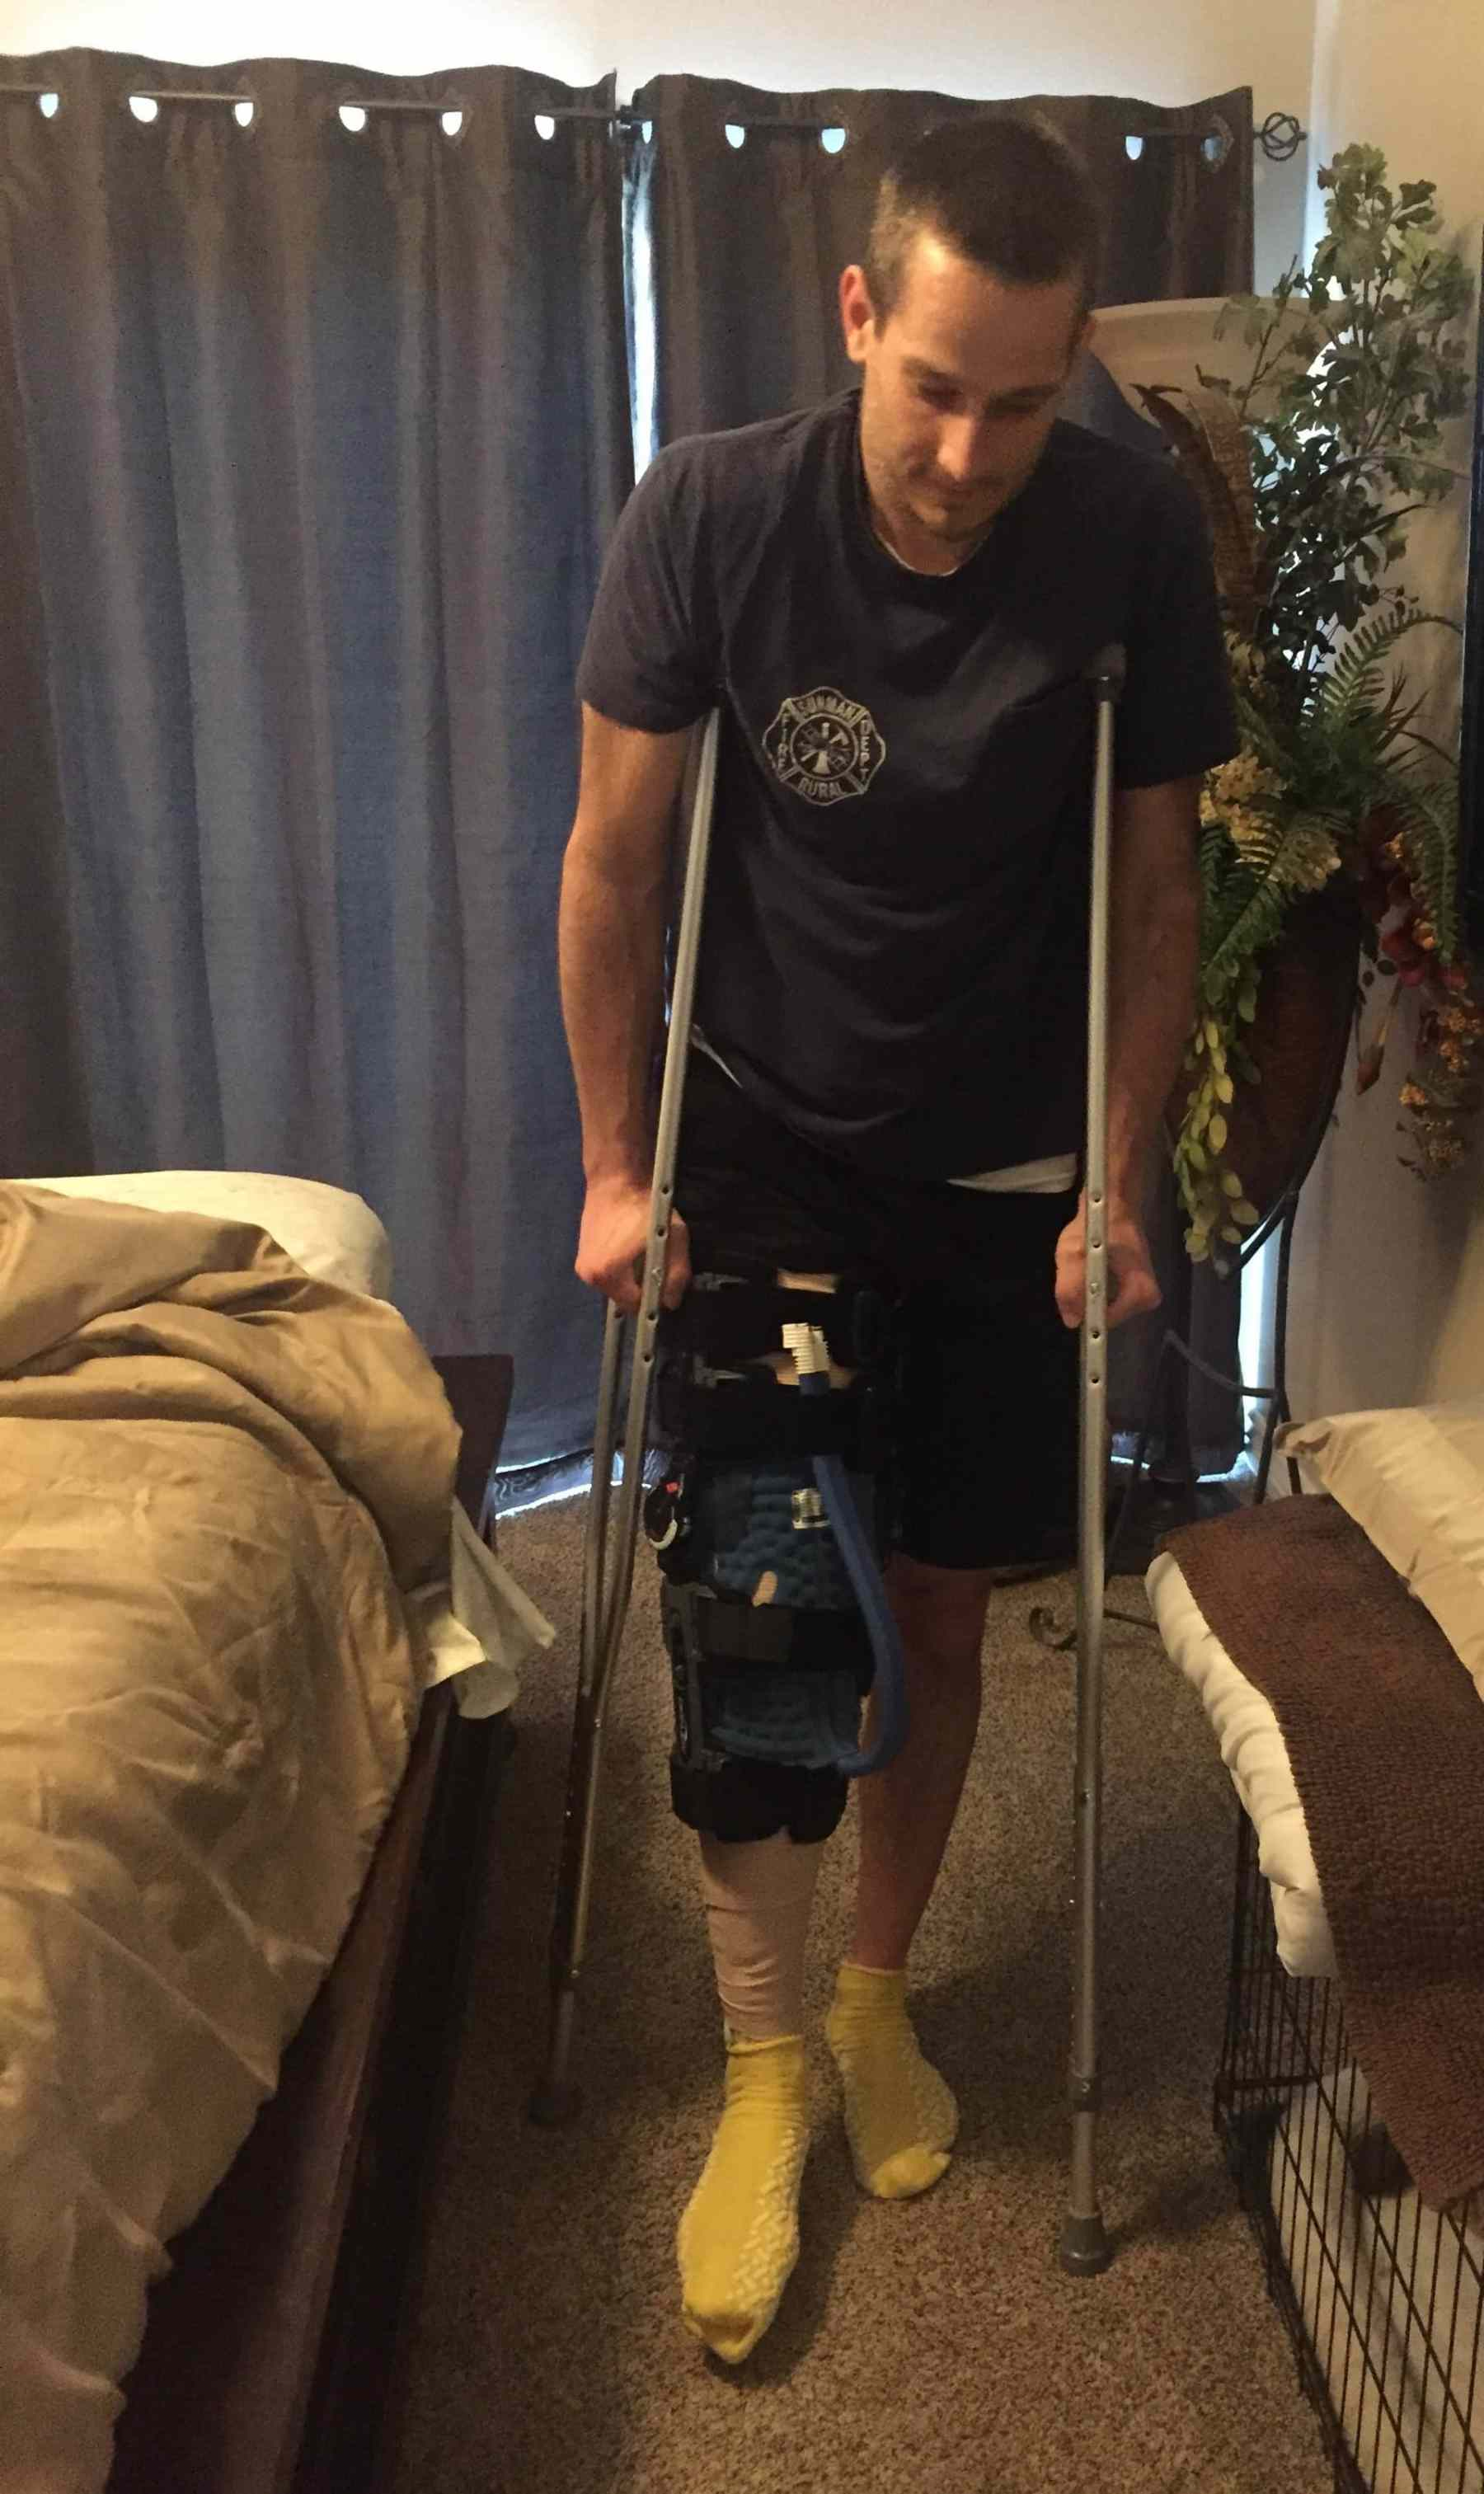 learning to use crutches